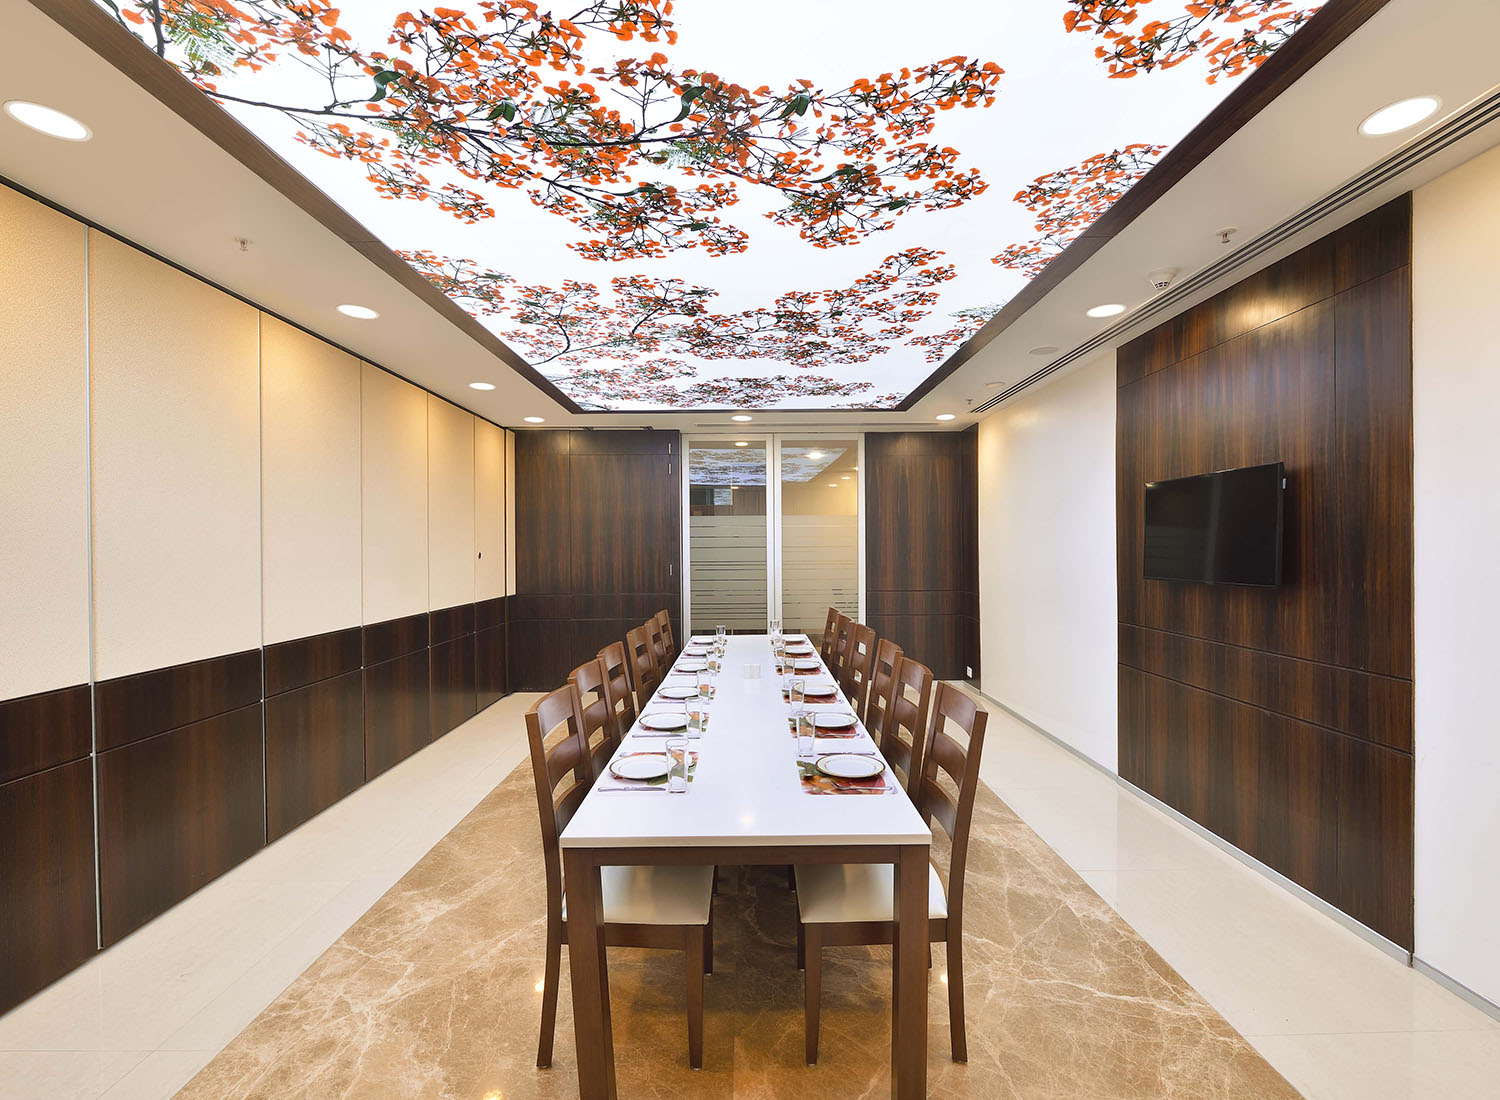 TCS - 3d Stretch Ceiling Translucent with Backlighting in Corporate - Corporate - Noida